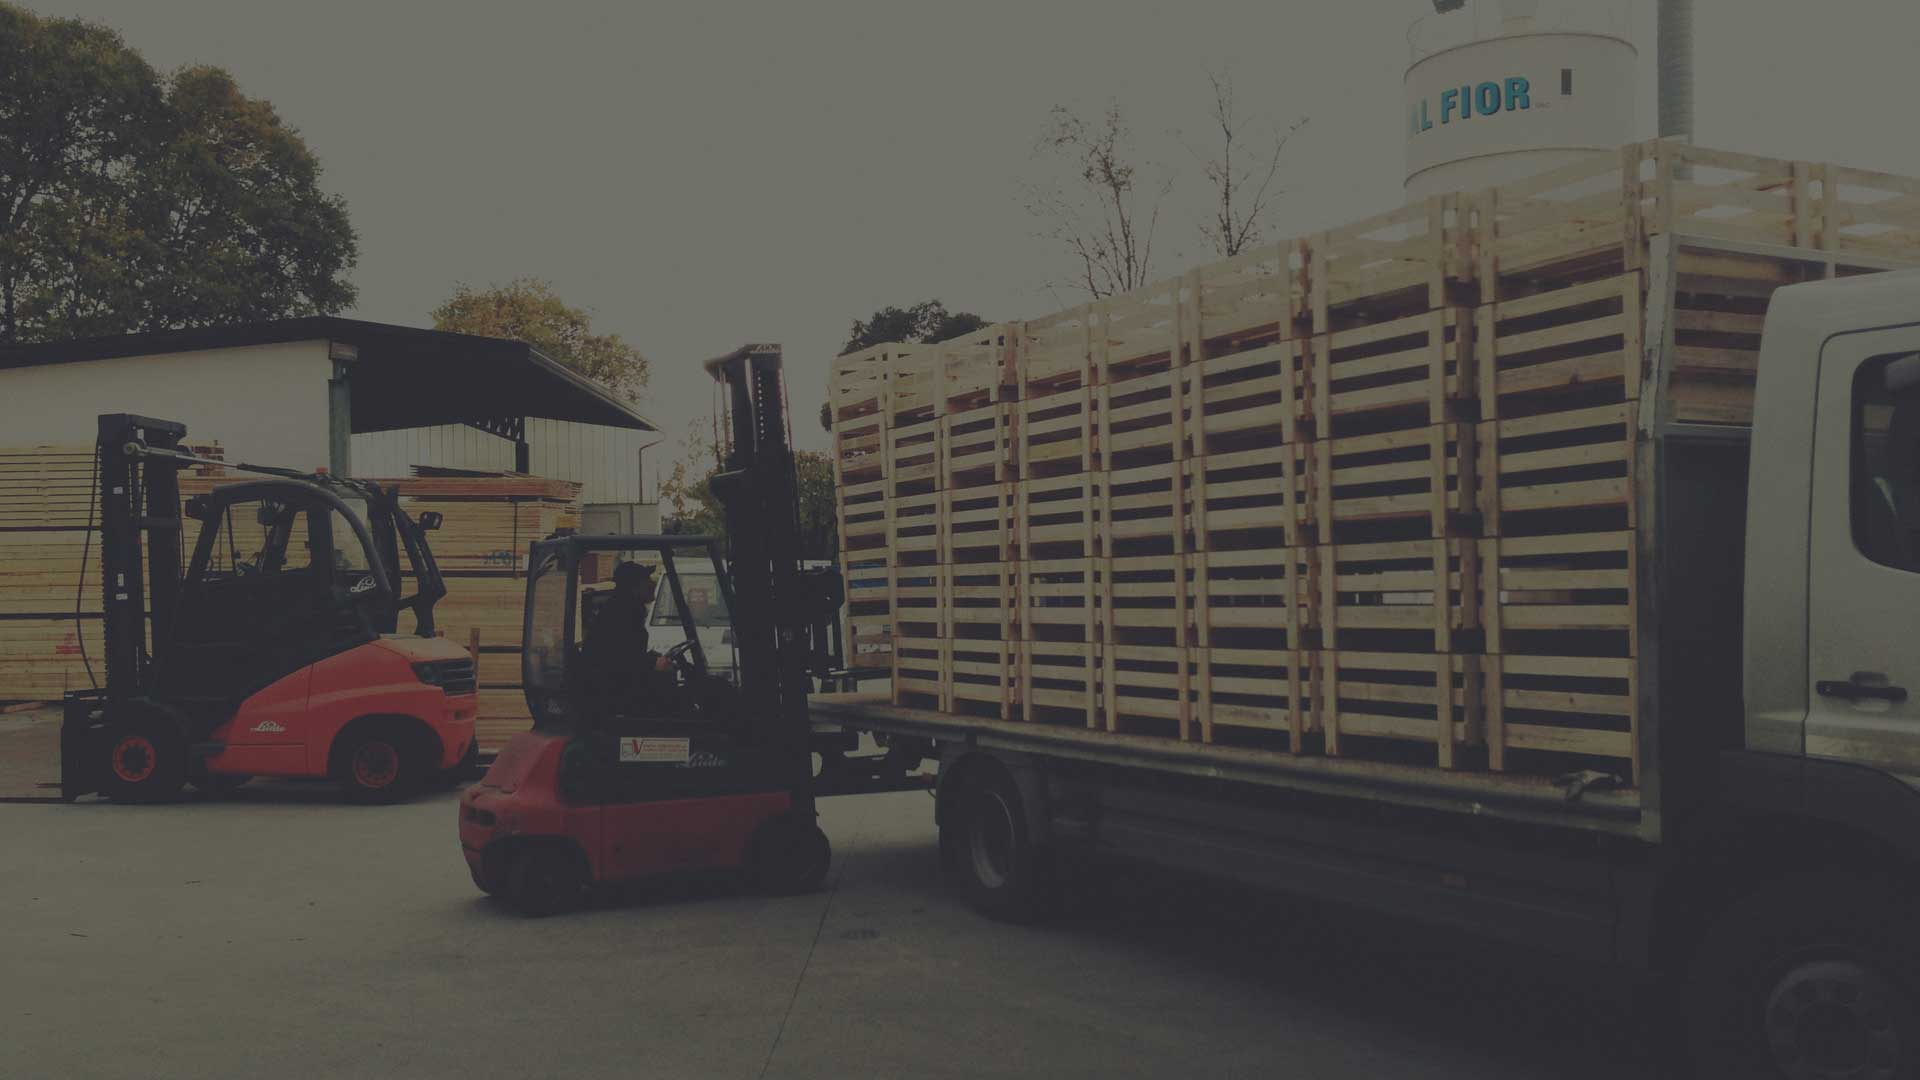 Product loading at Fratelli Dal Fior factory